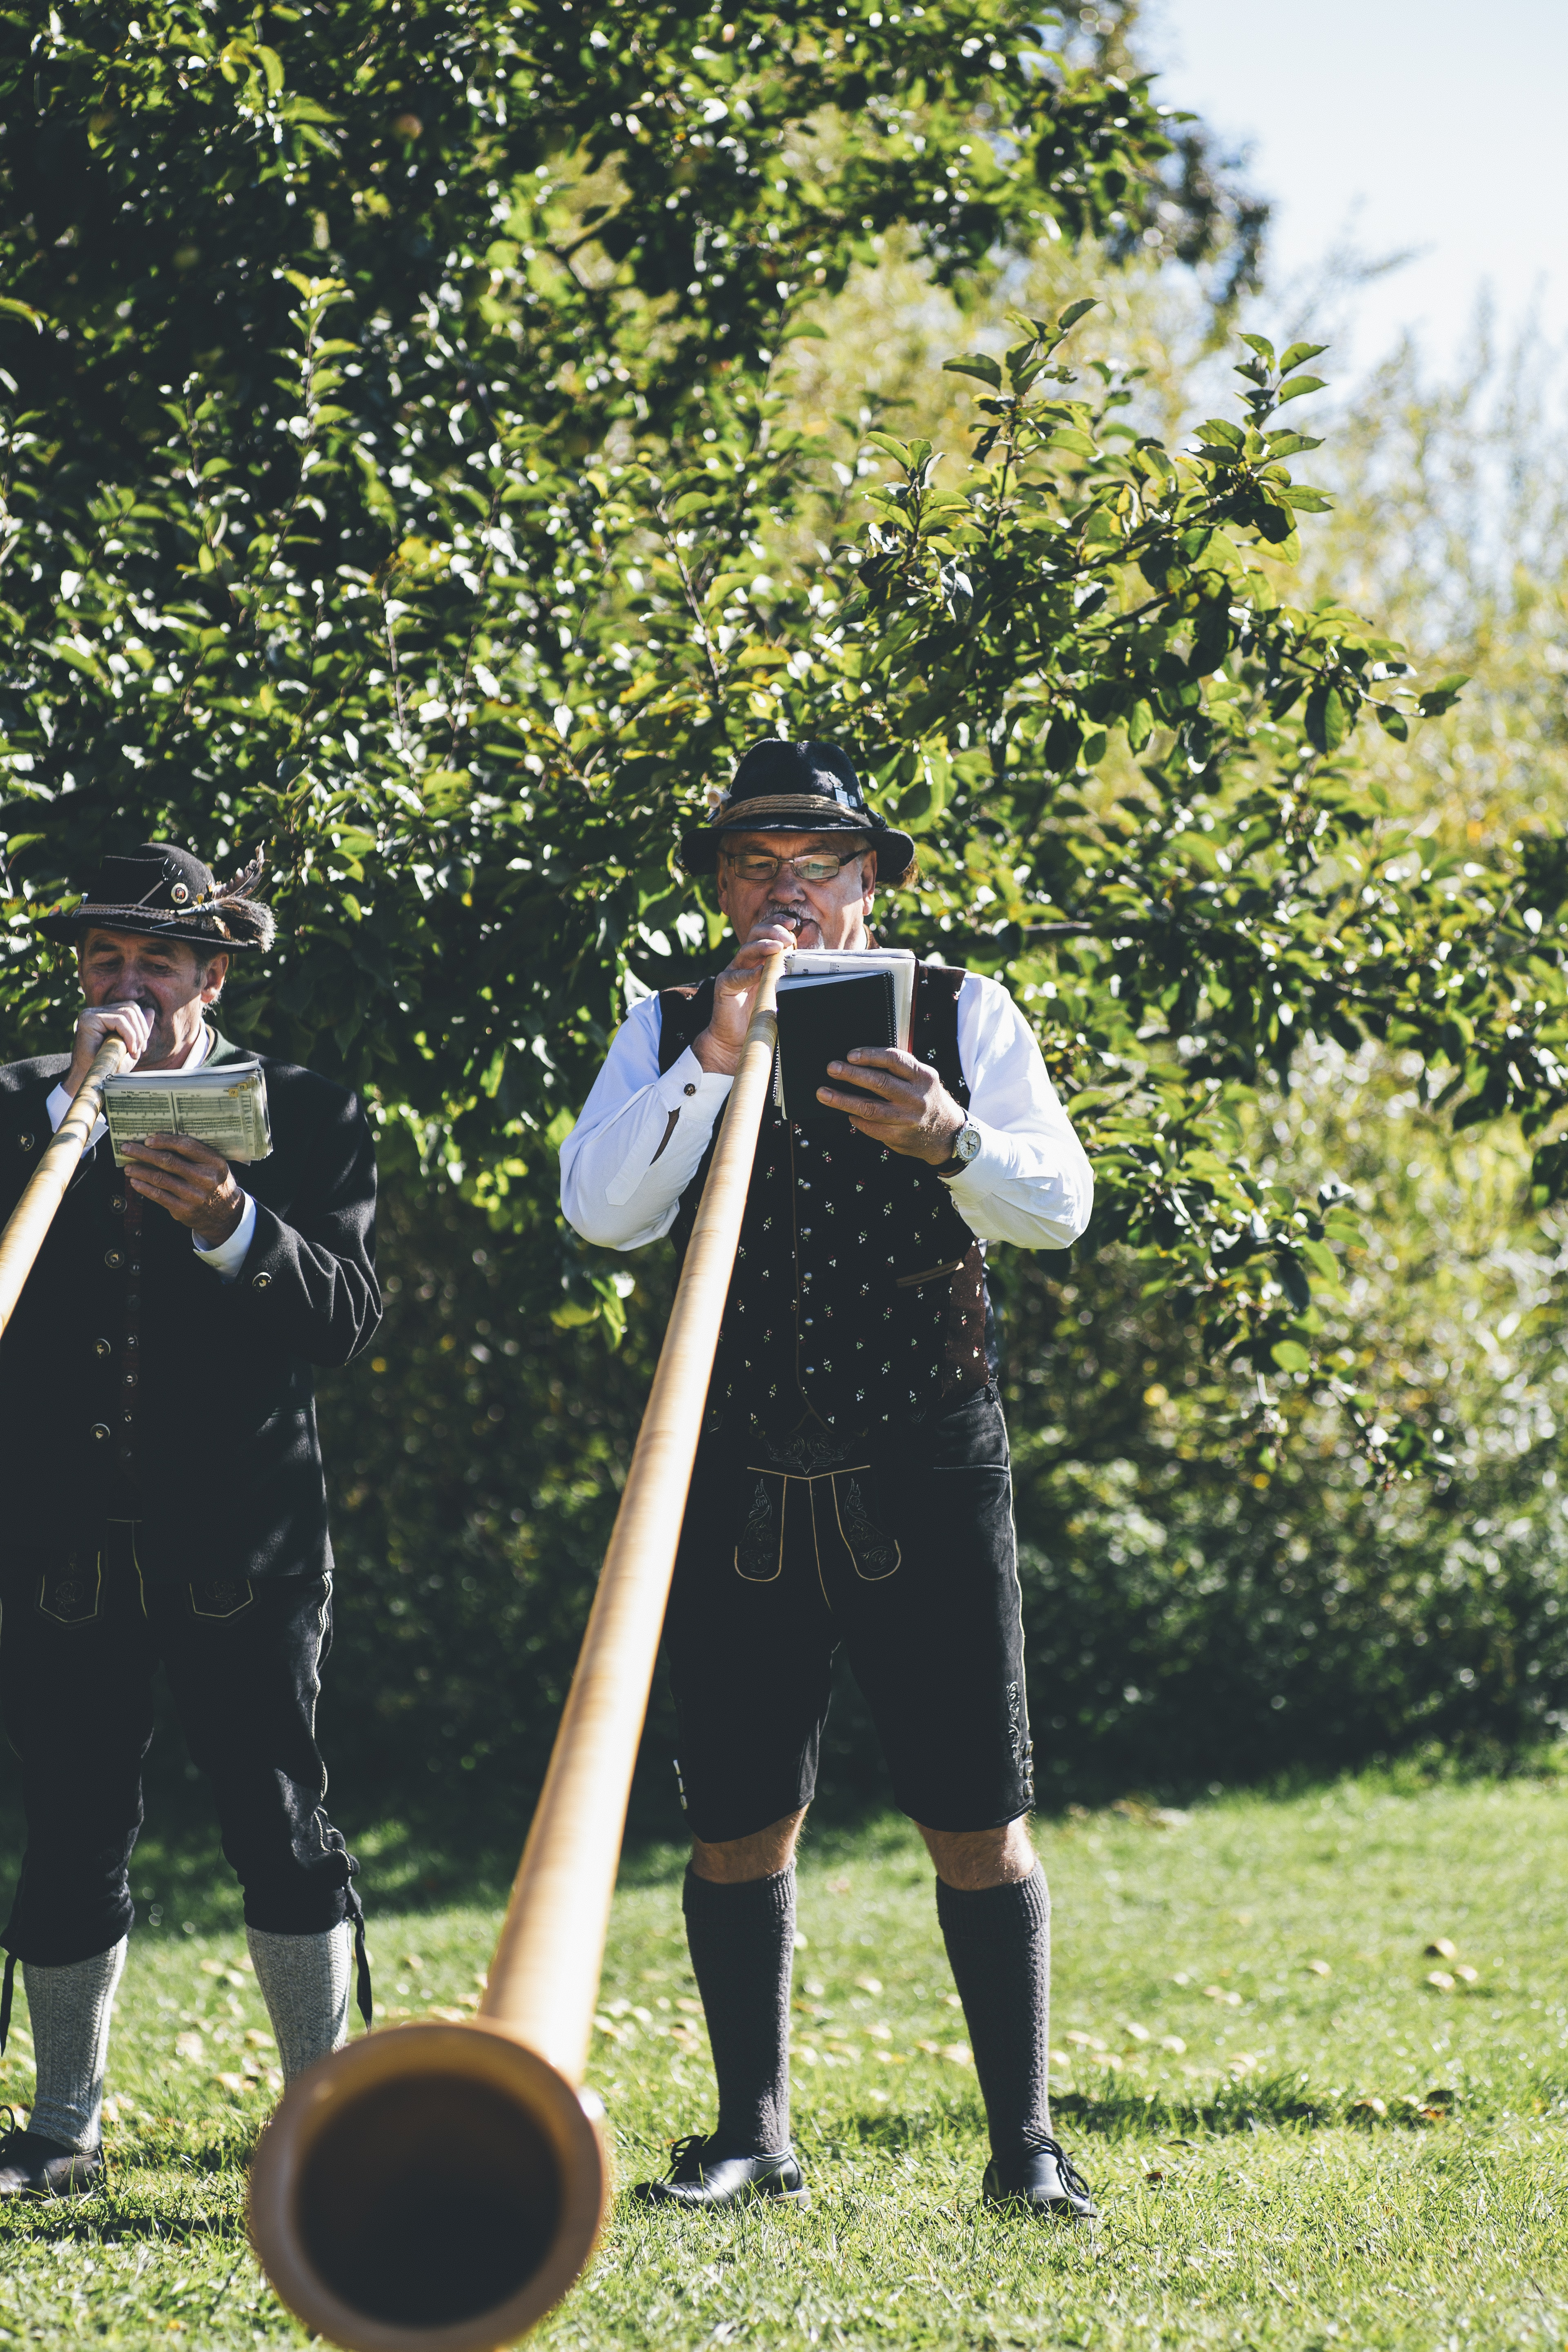 two men playing brown wind instrument while holding books during daytime